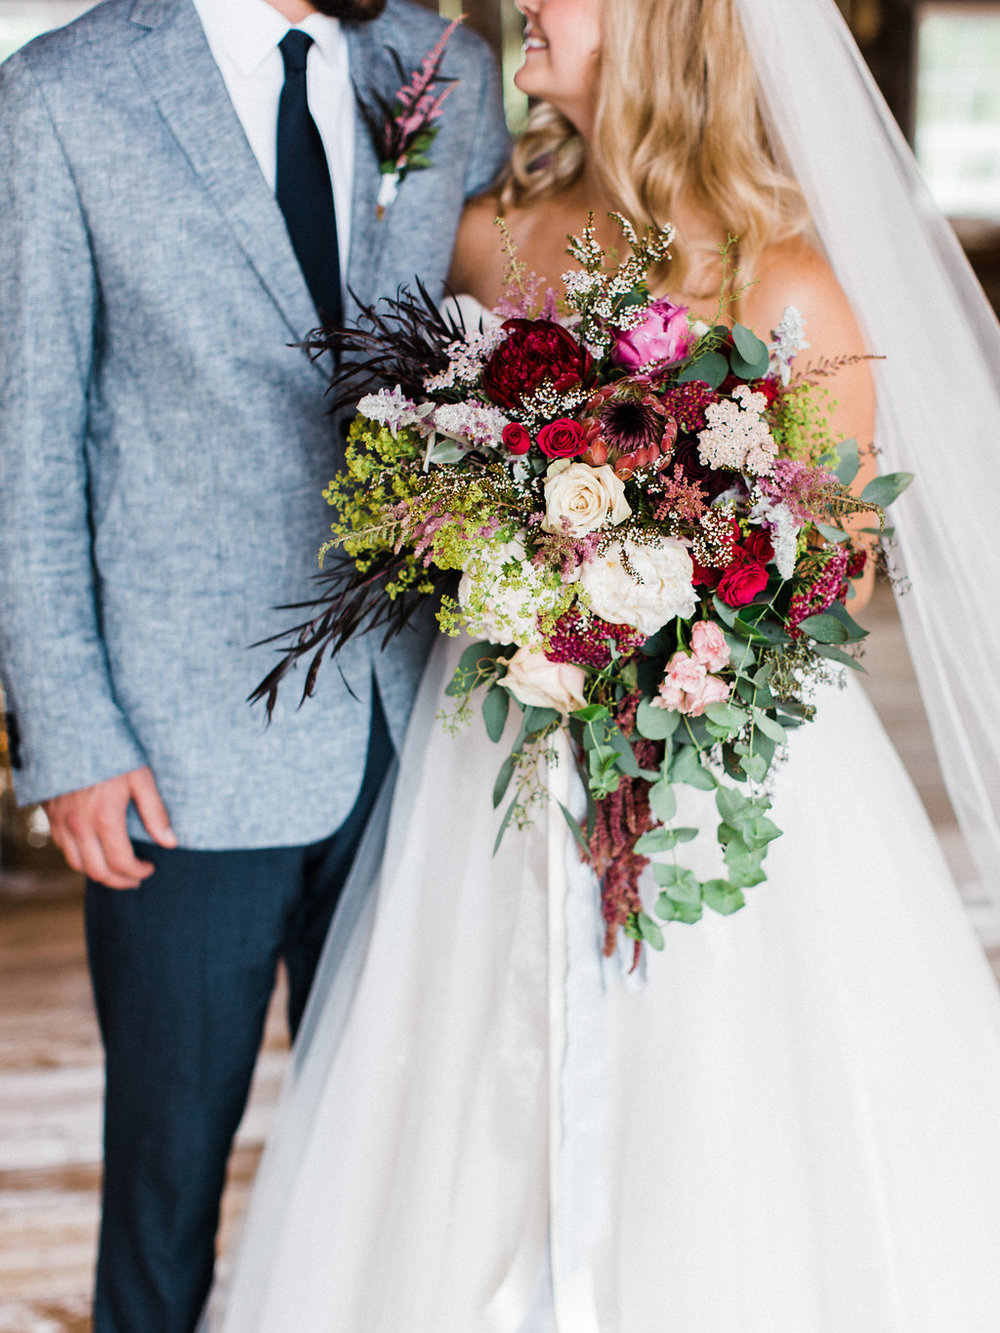 Couple posing with the flower bouquet